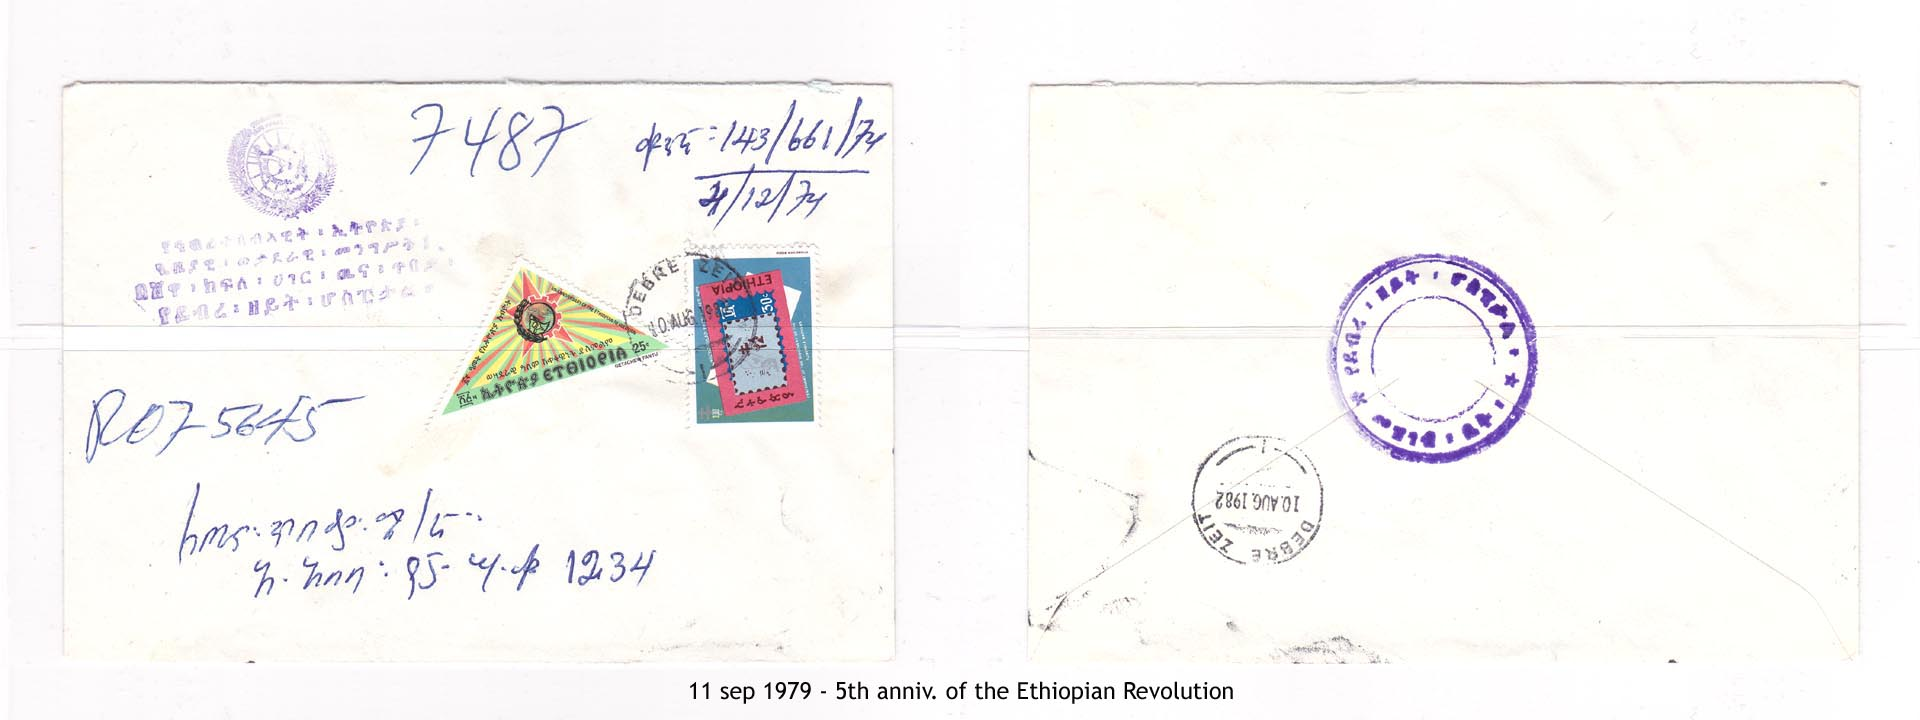 19790911 - 5th anniv. of the Ethiopian Revolution z